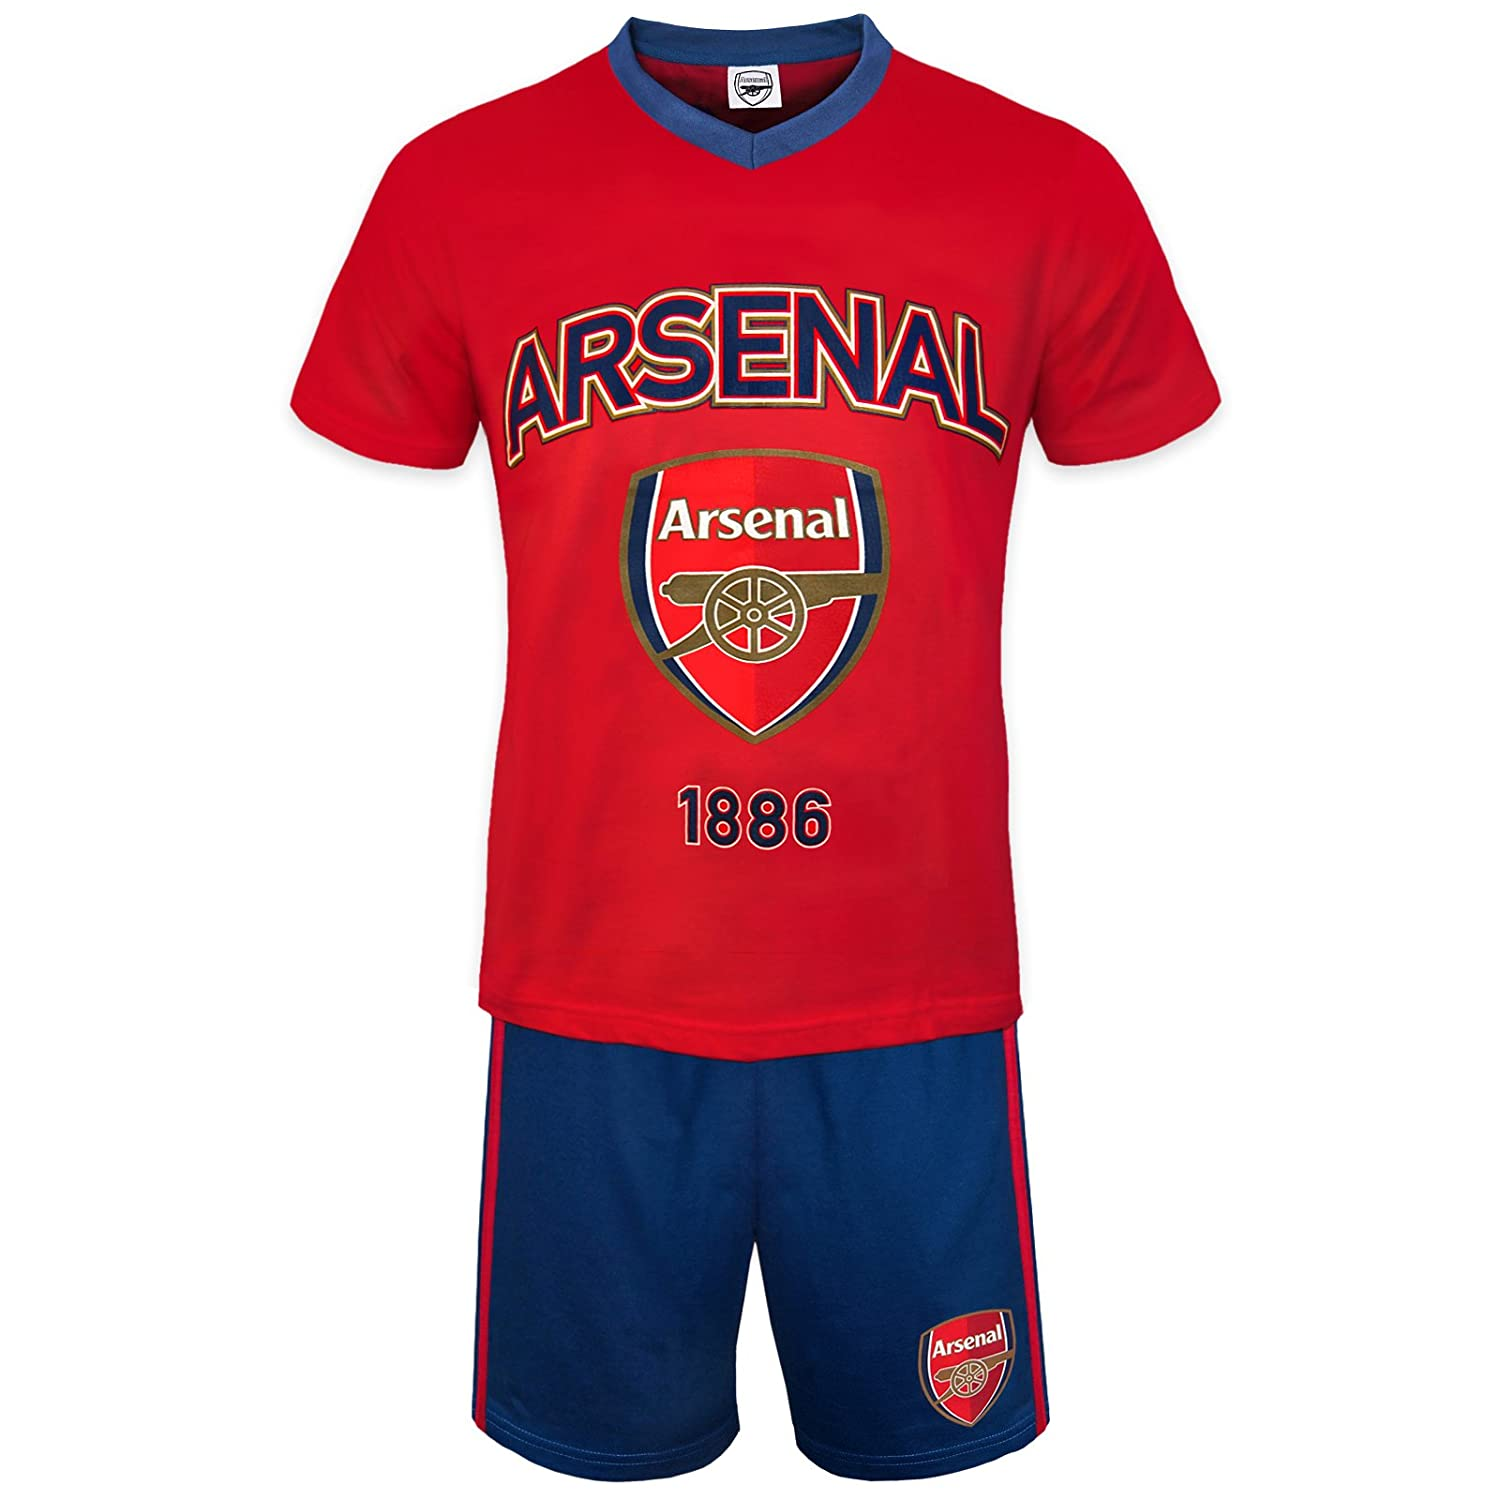 Arsenal FC Official Football Gift Mens Short Pyjamas Loungewear